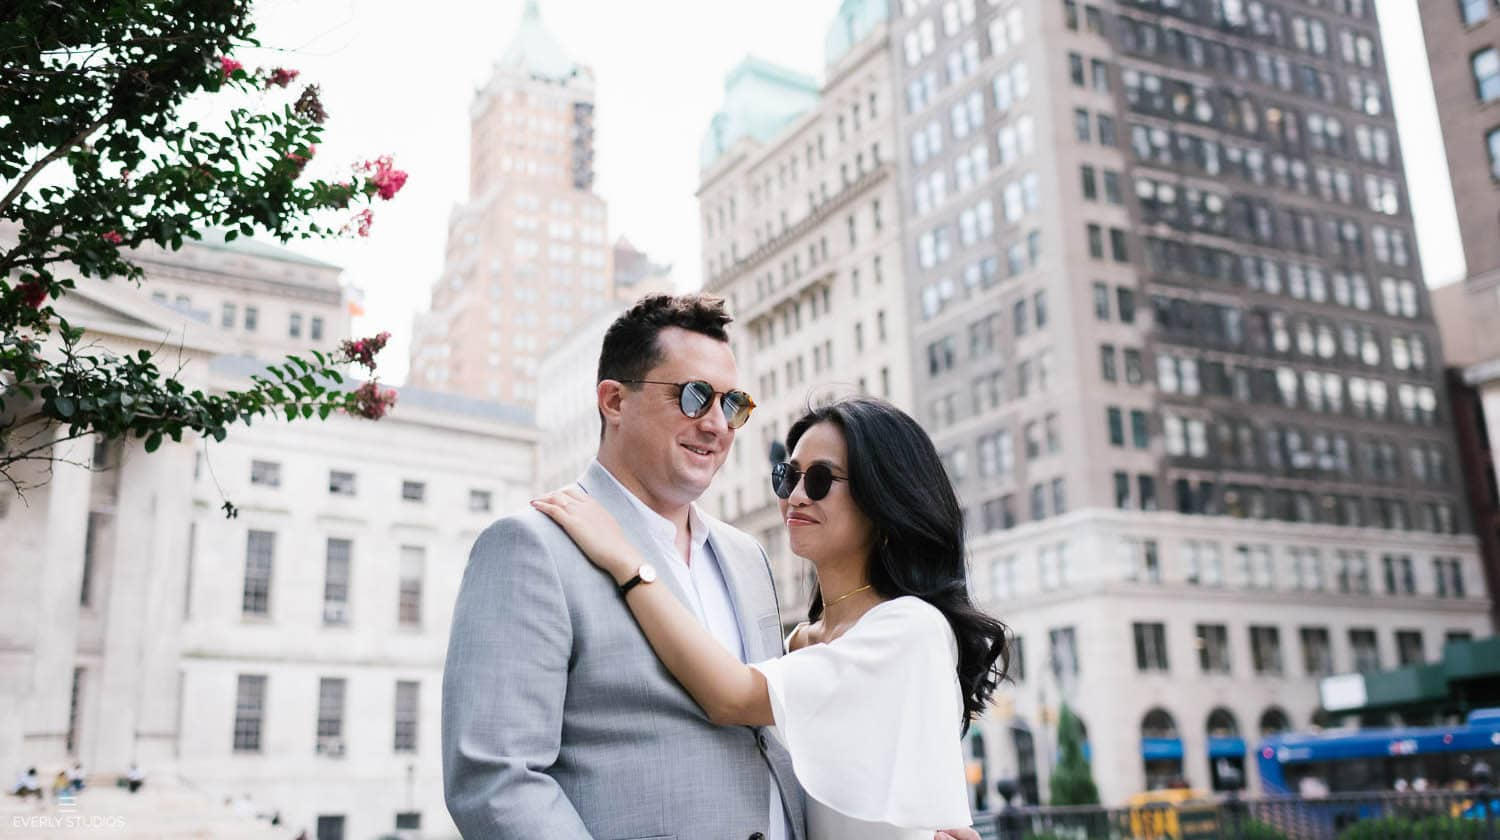 Getting married at Brooklyn City Hall: A Brooklyn City Hall wedding